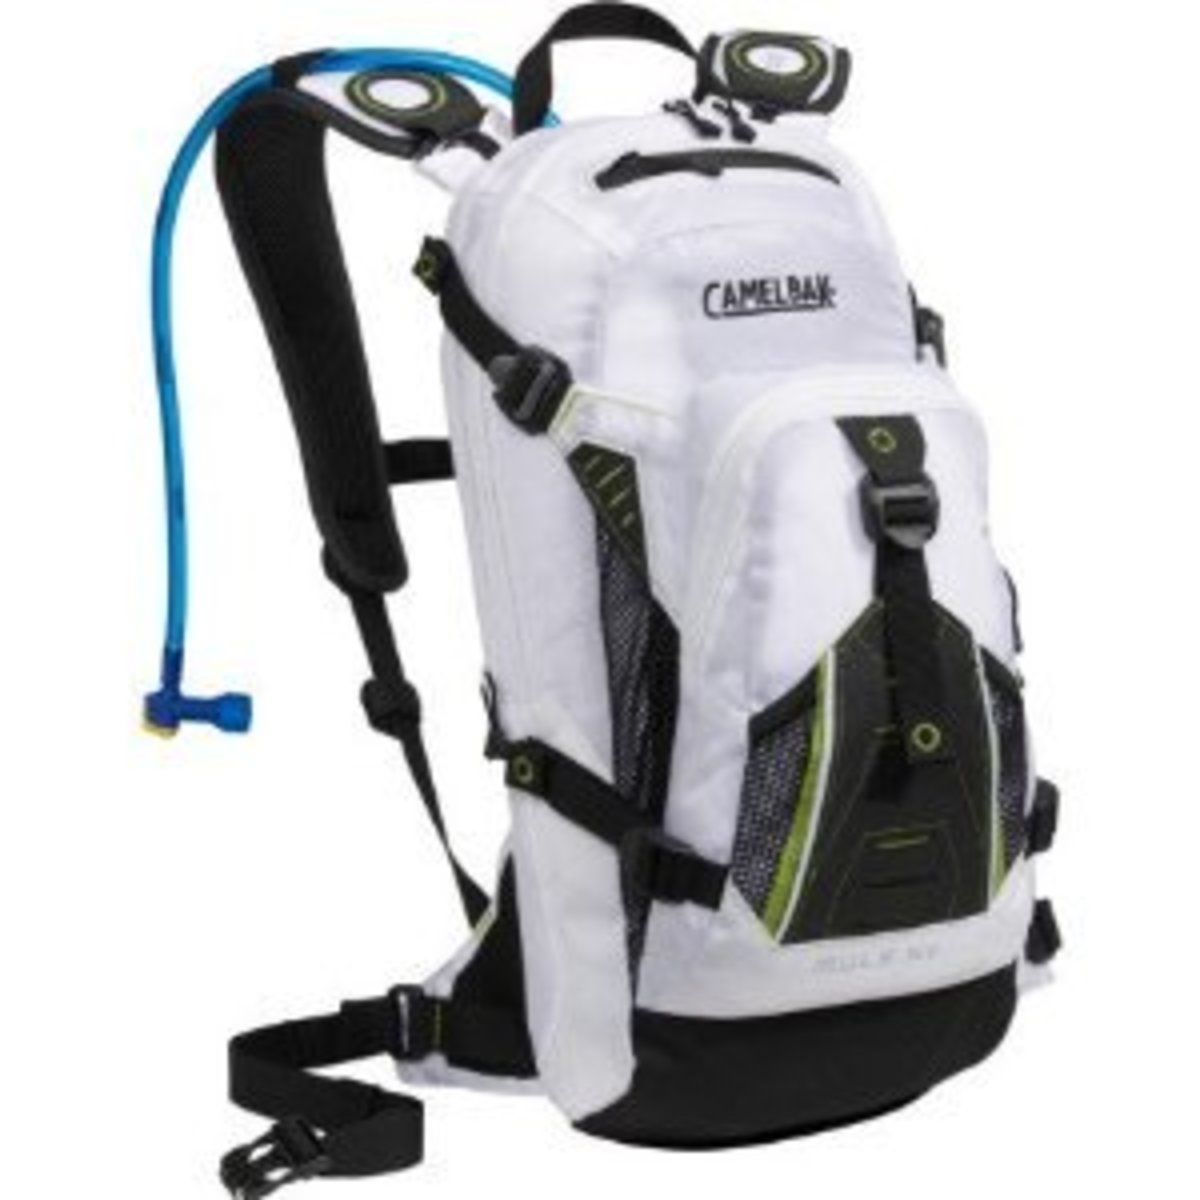 Camelbak M.U.L.E. NV 100 Oz Hydration Pack - White